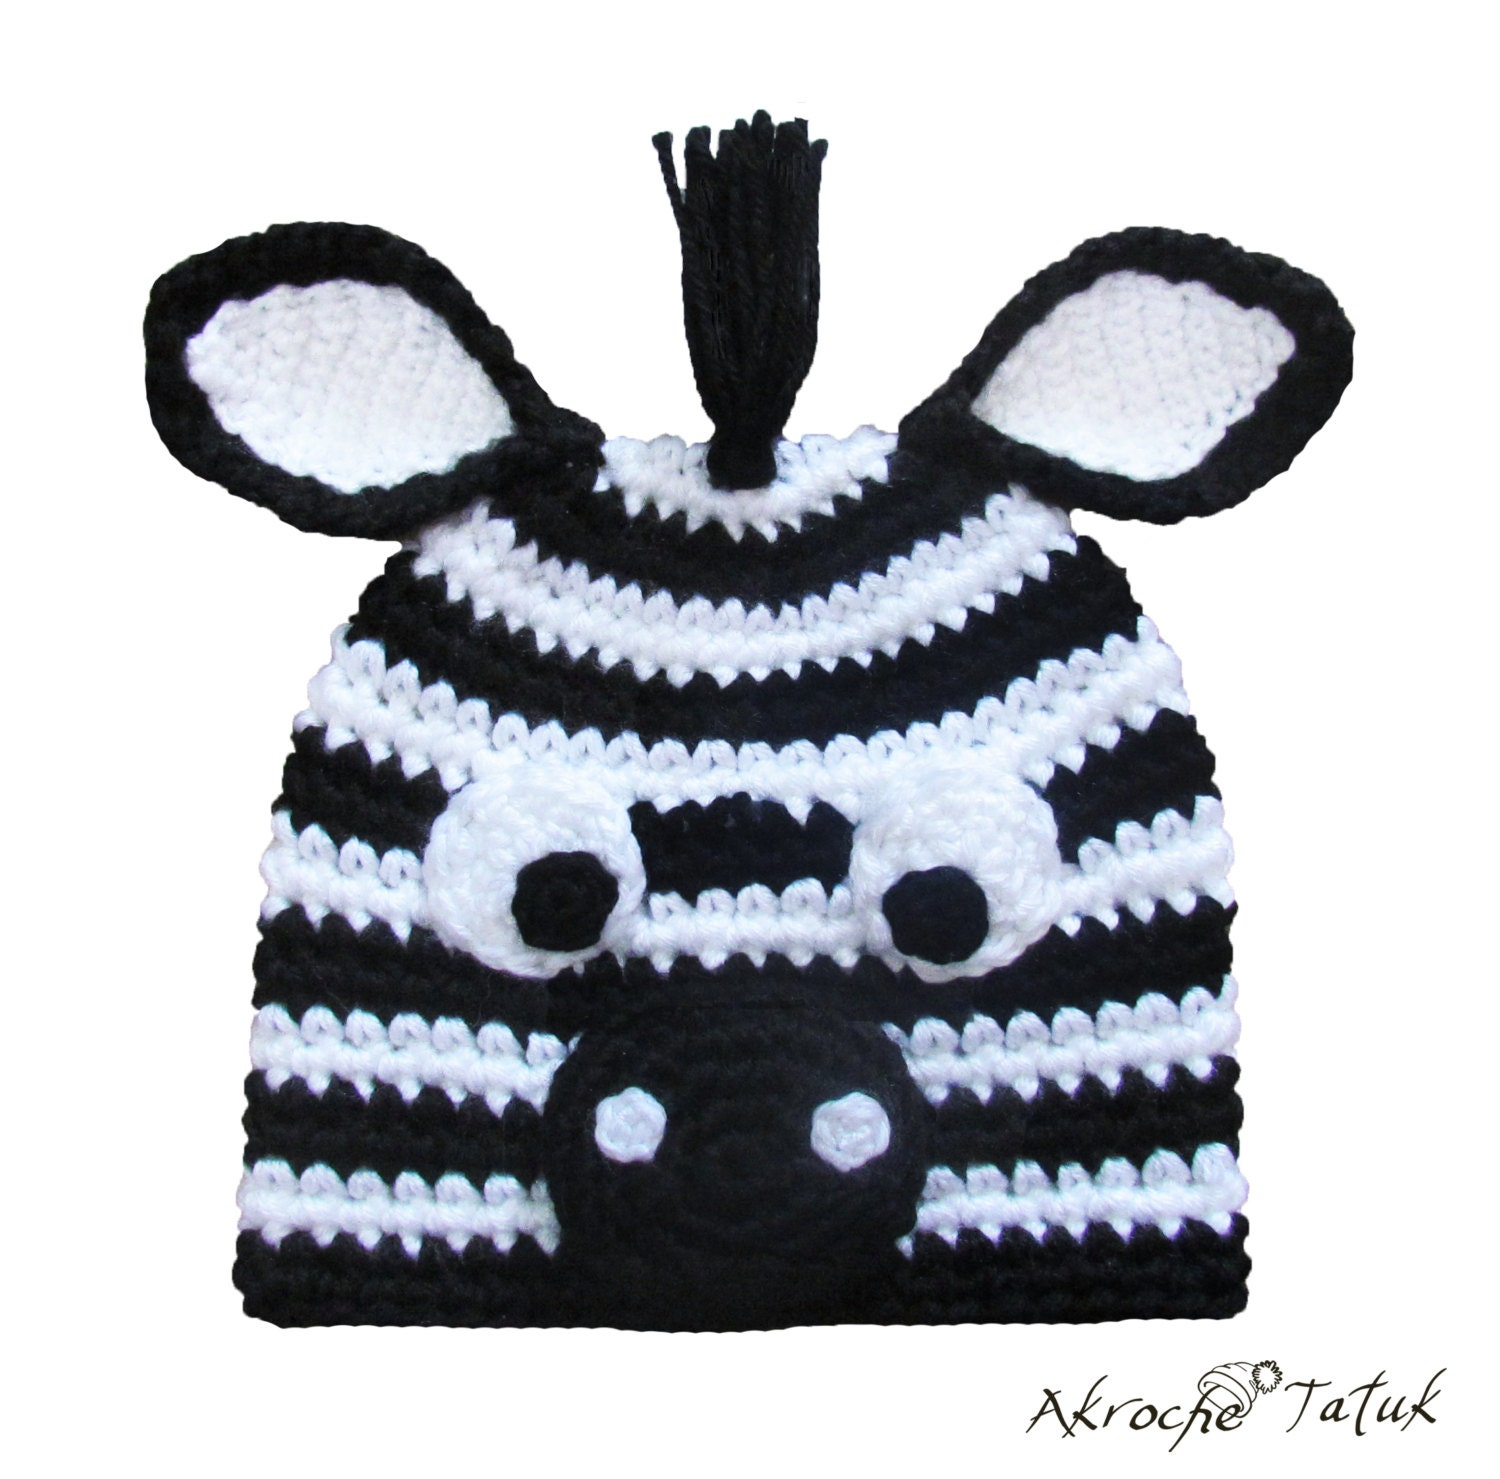 Crochet Zebra Hat : Request a custom order and have something made just for you.